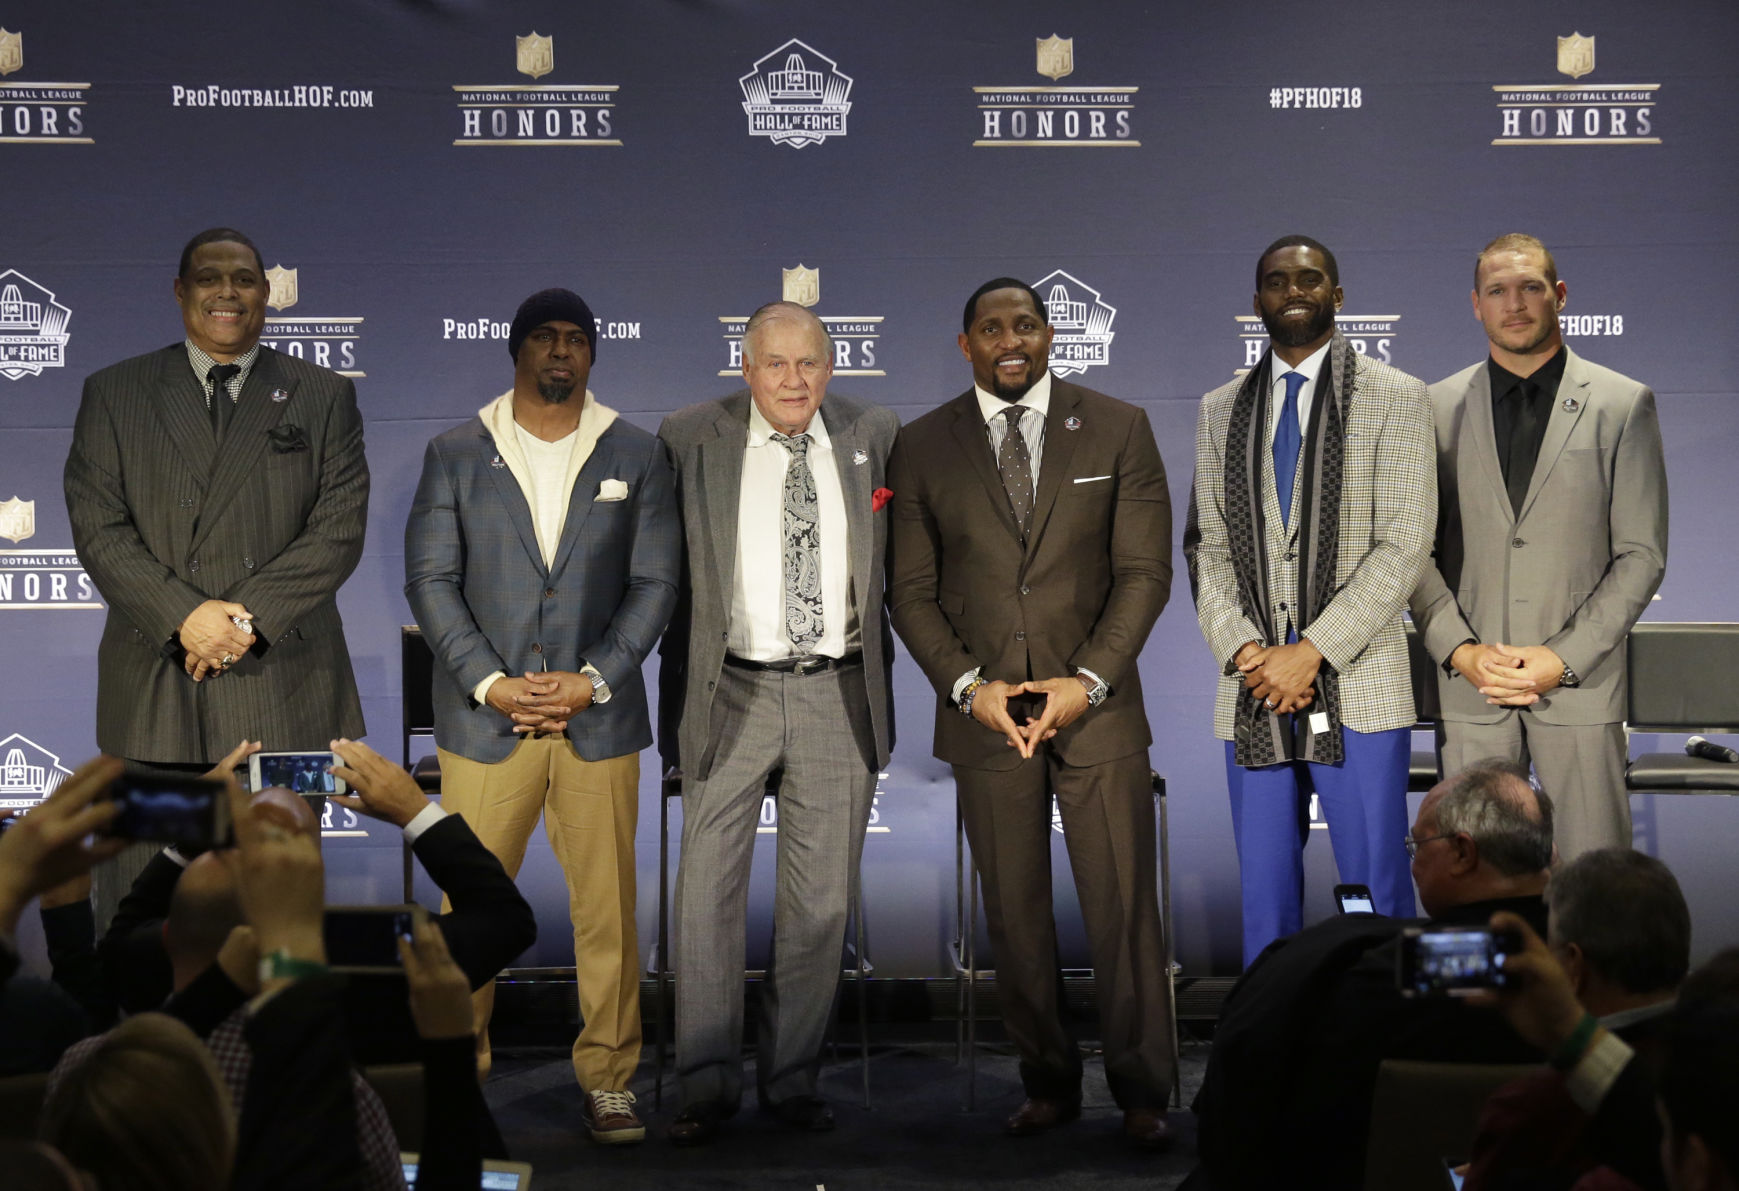 Hall of Fame Lewis Moss Owens Urlacher